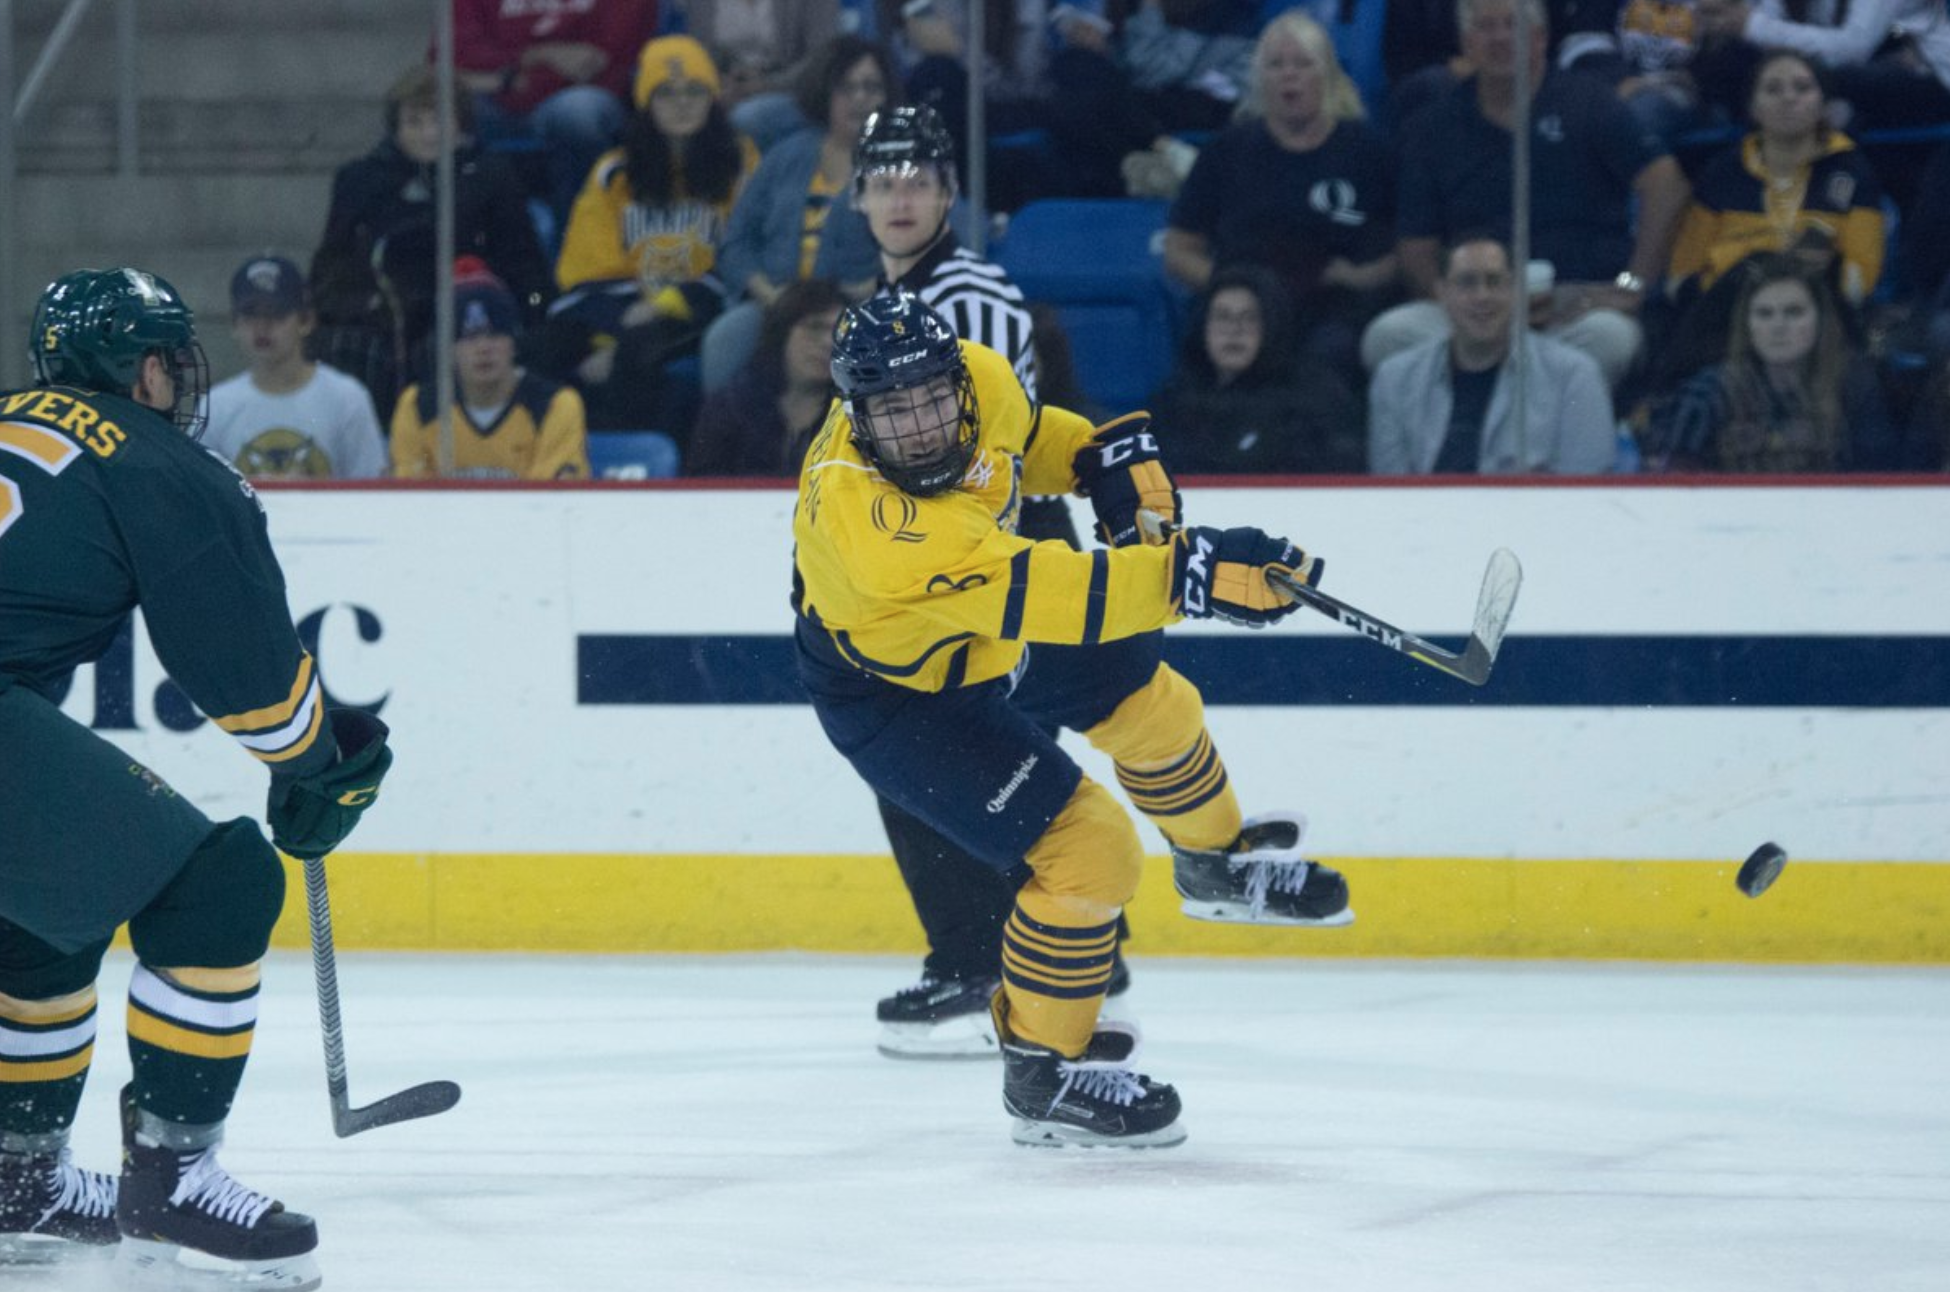 Cait's Column: Don't panic yet, Quinnipiac's offense is just getting started